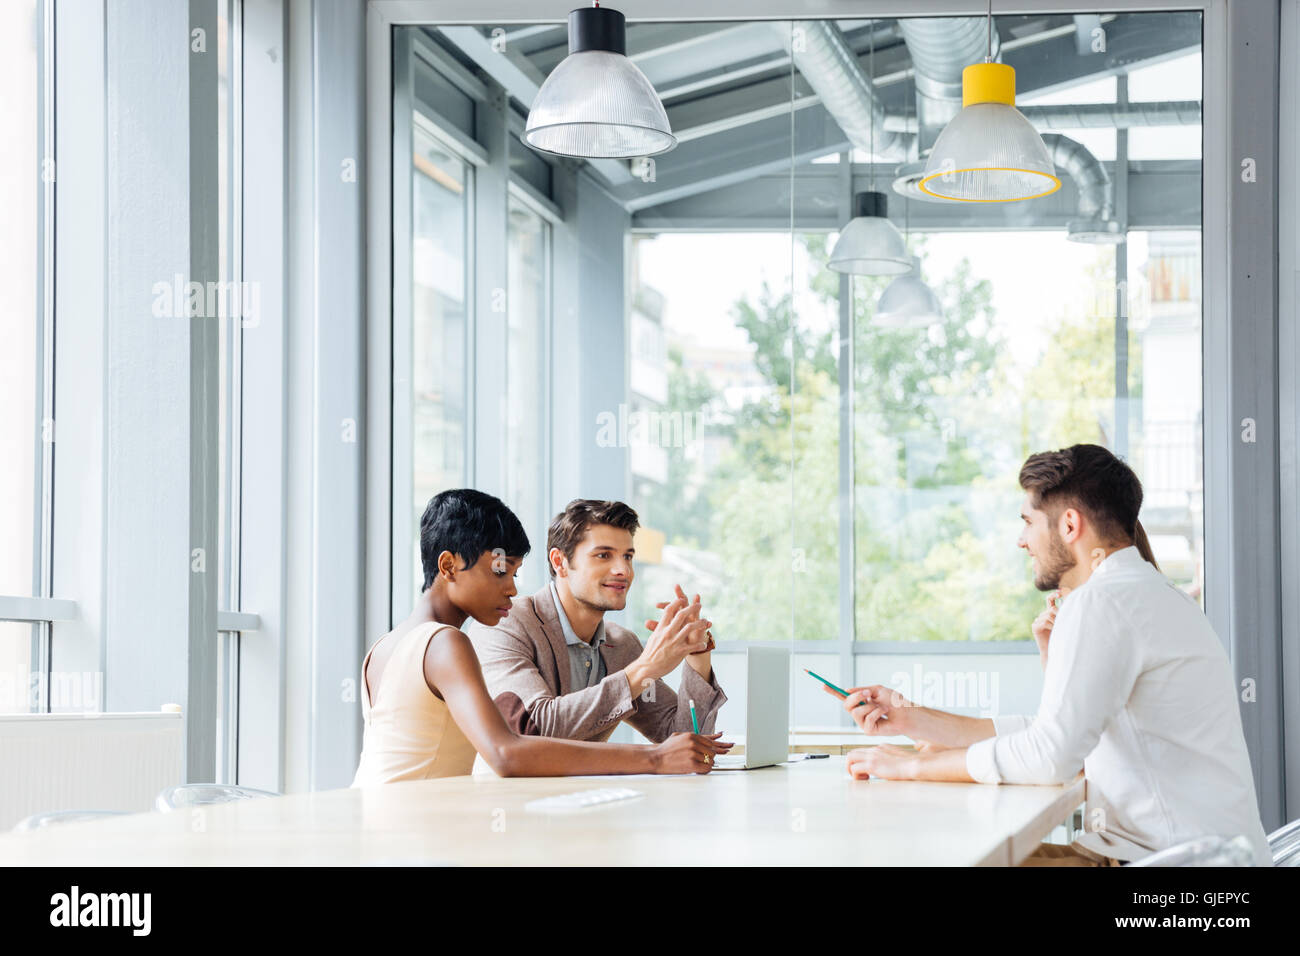 Group of young businesspeople working and brainstorming on meeting in office - Stock Image